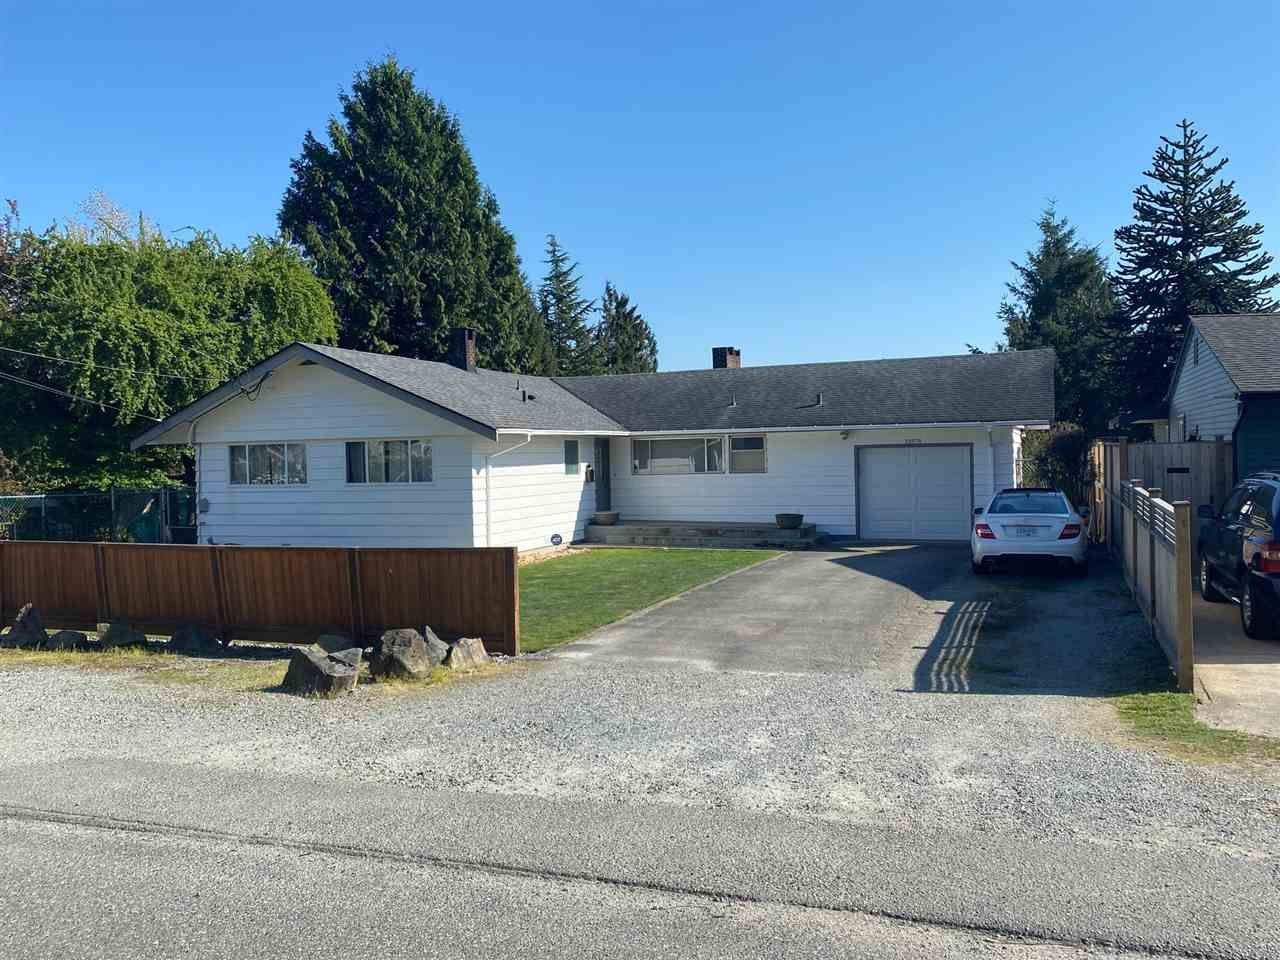 Main Photo: 32978 5 Avenue in Mission: Mission BC House for sale : MLS®# R2570657